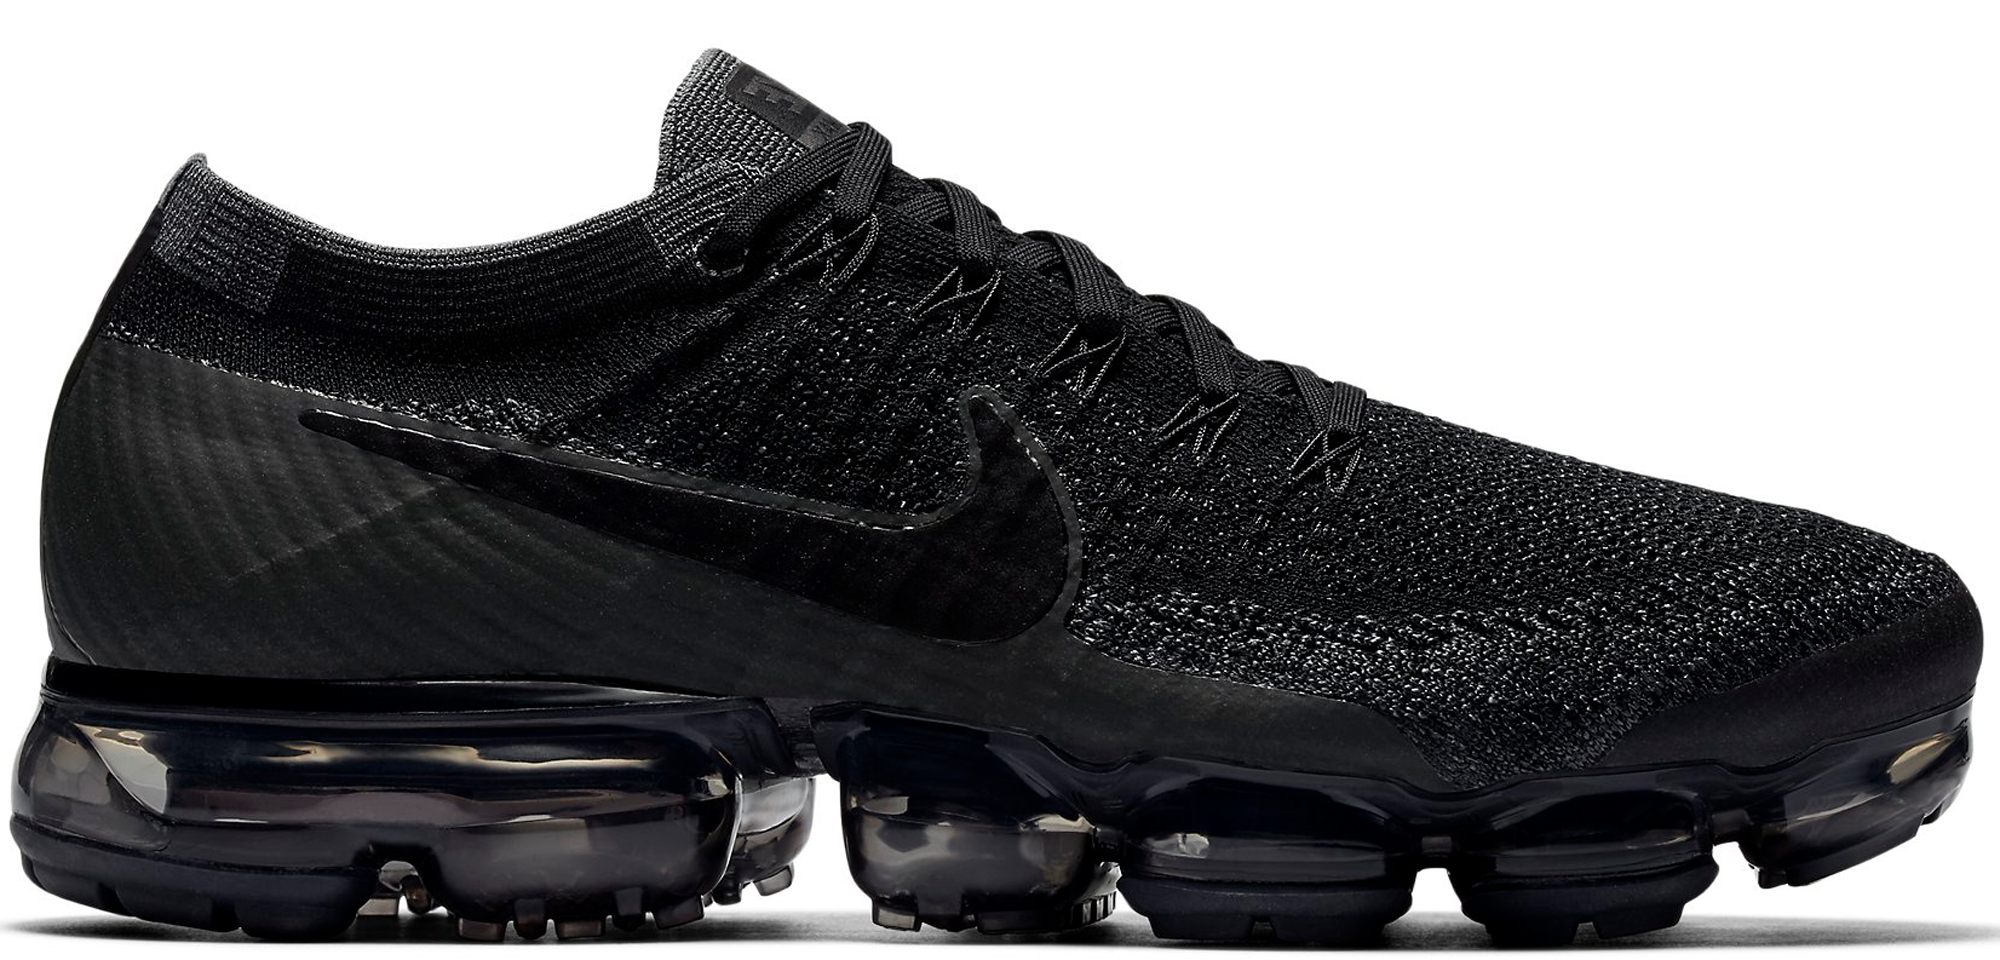 info for 1938f 3d831 Nike Air VaporMax Triple Black 2.0 - StockX News